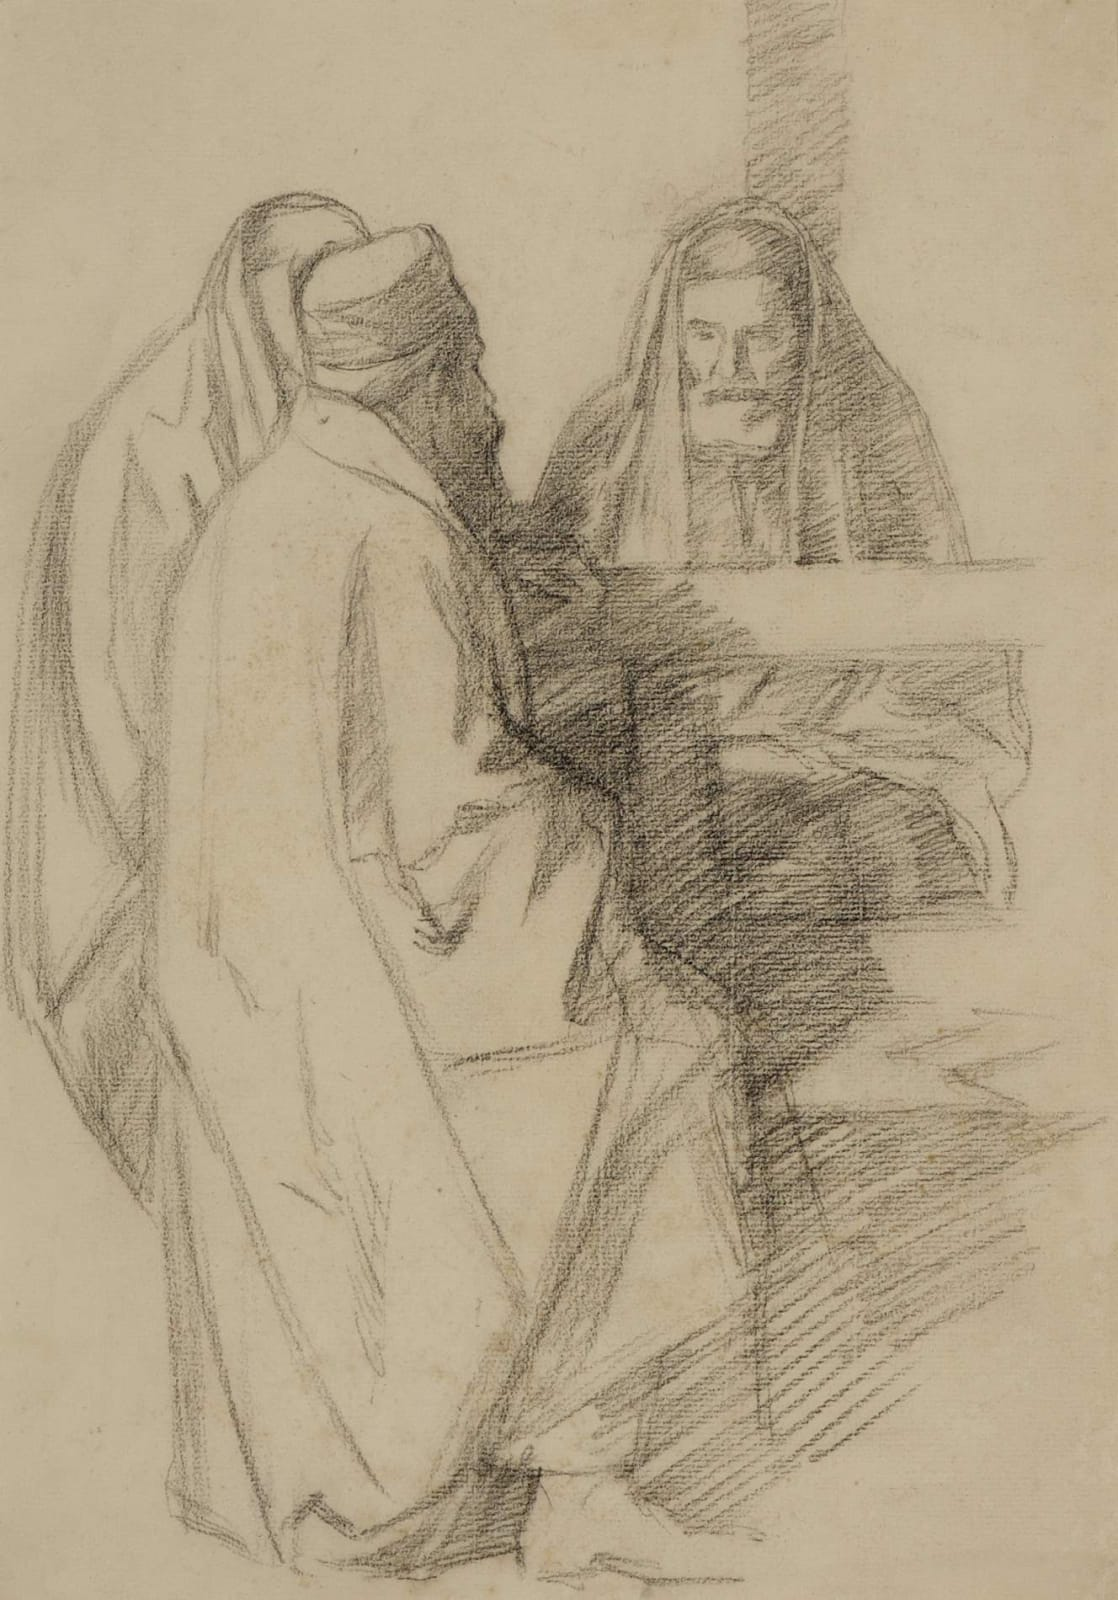 William Rothenstein (1872-1945) Talmudic Discussion c. 1905 Pencil on paper 37 x 25.5 cm Ben Uri Collection To see and discover more about this artist click here